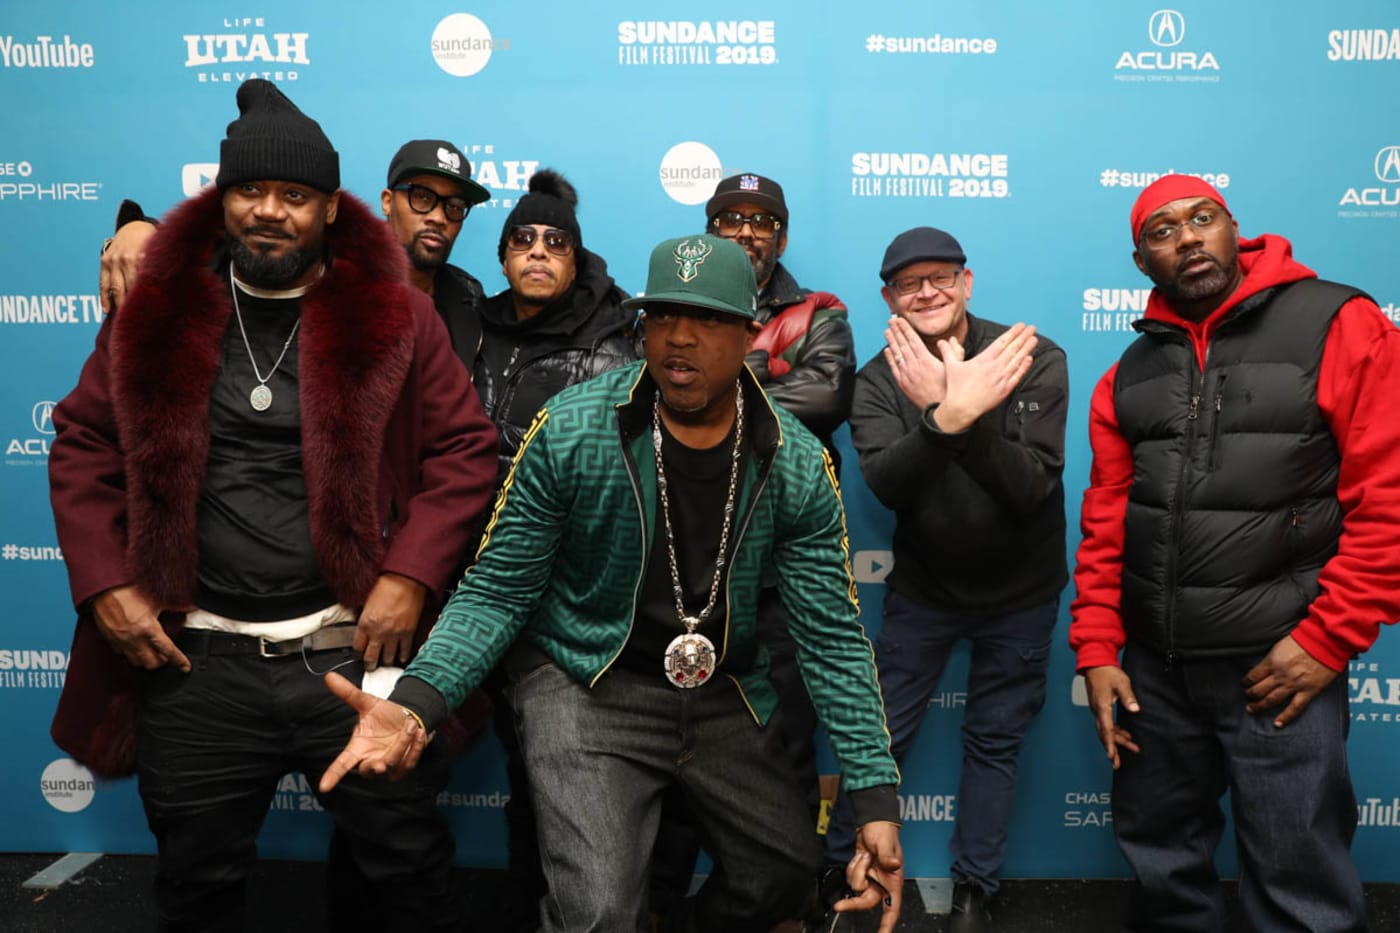 Wu Tang Clan and programmer Adam Montgomery at Sundance Film Festival 2019